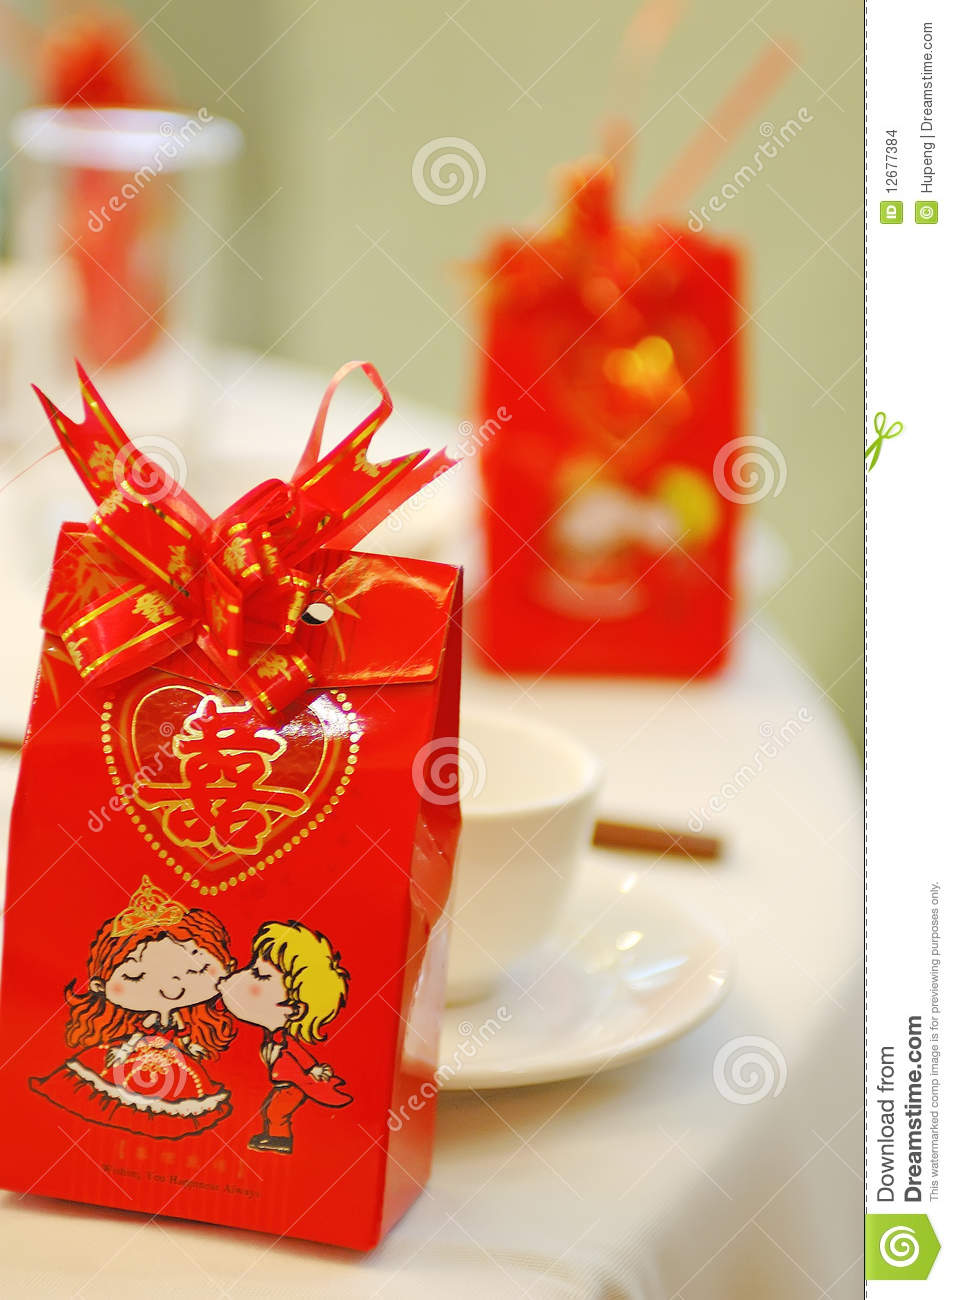 Chinese Wedding Banquet Table Setting Stock Photo Image